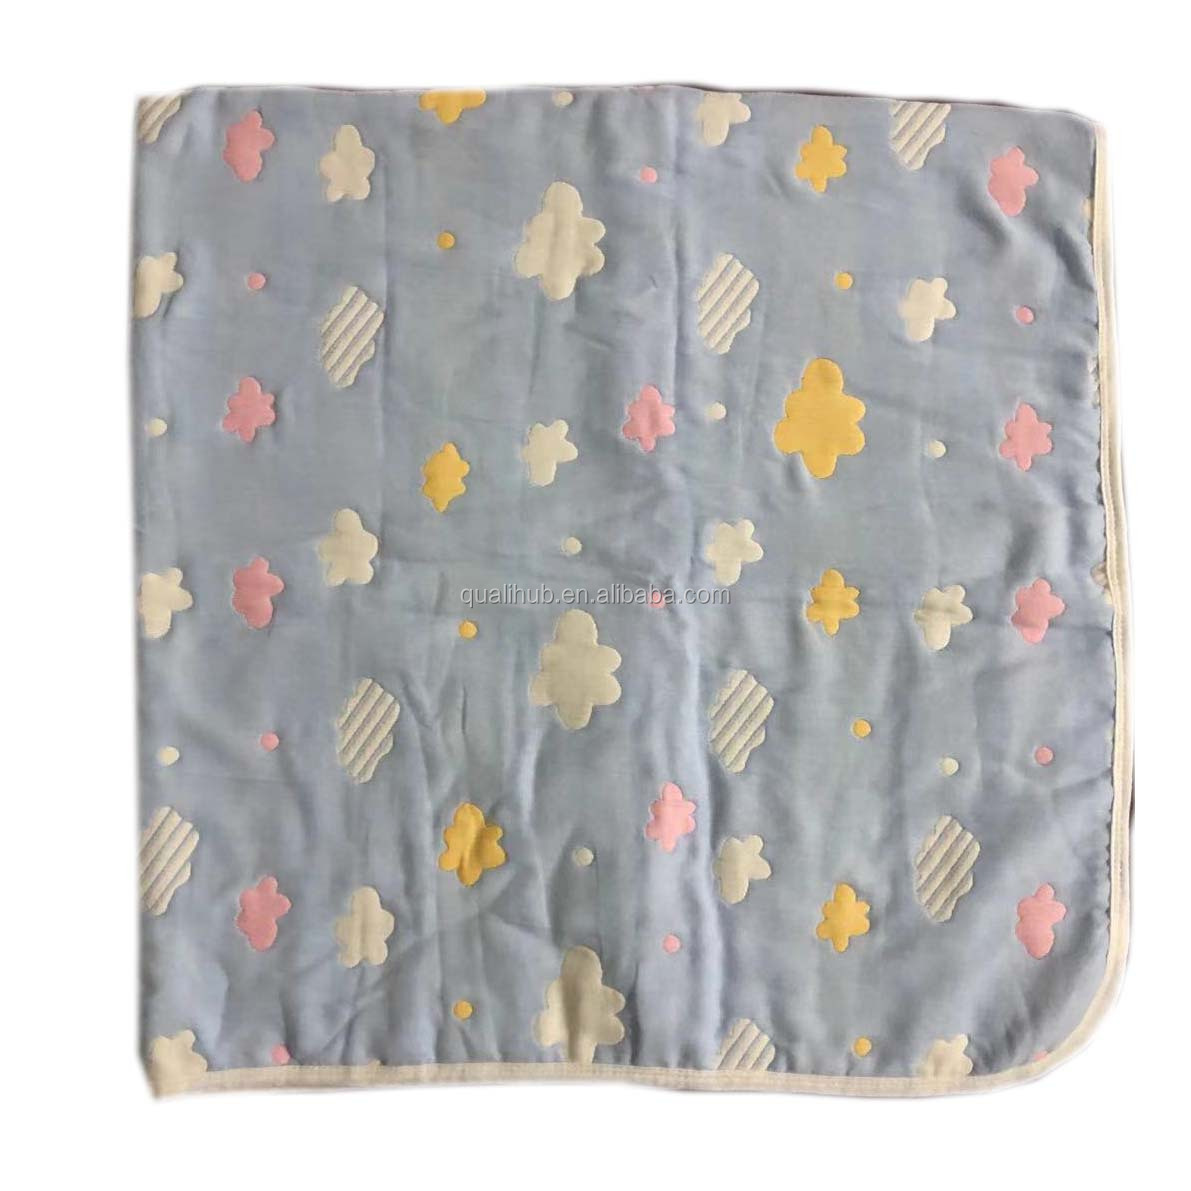 100%cotton Jacquard 6 layer muslin baby swaddle blanket